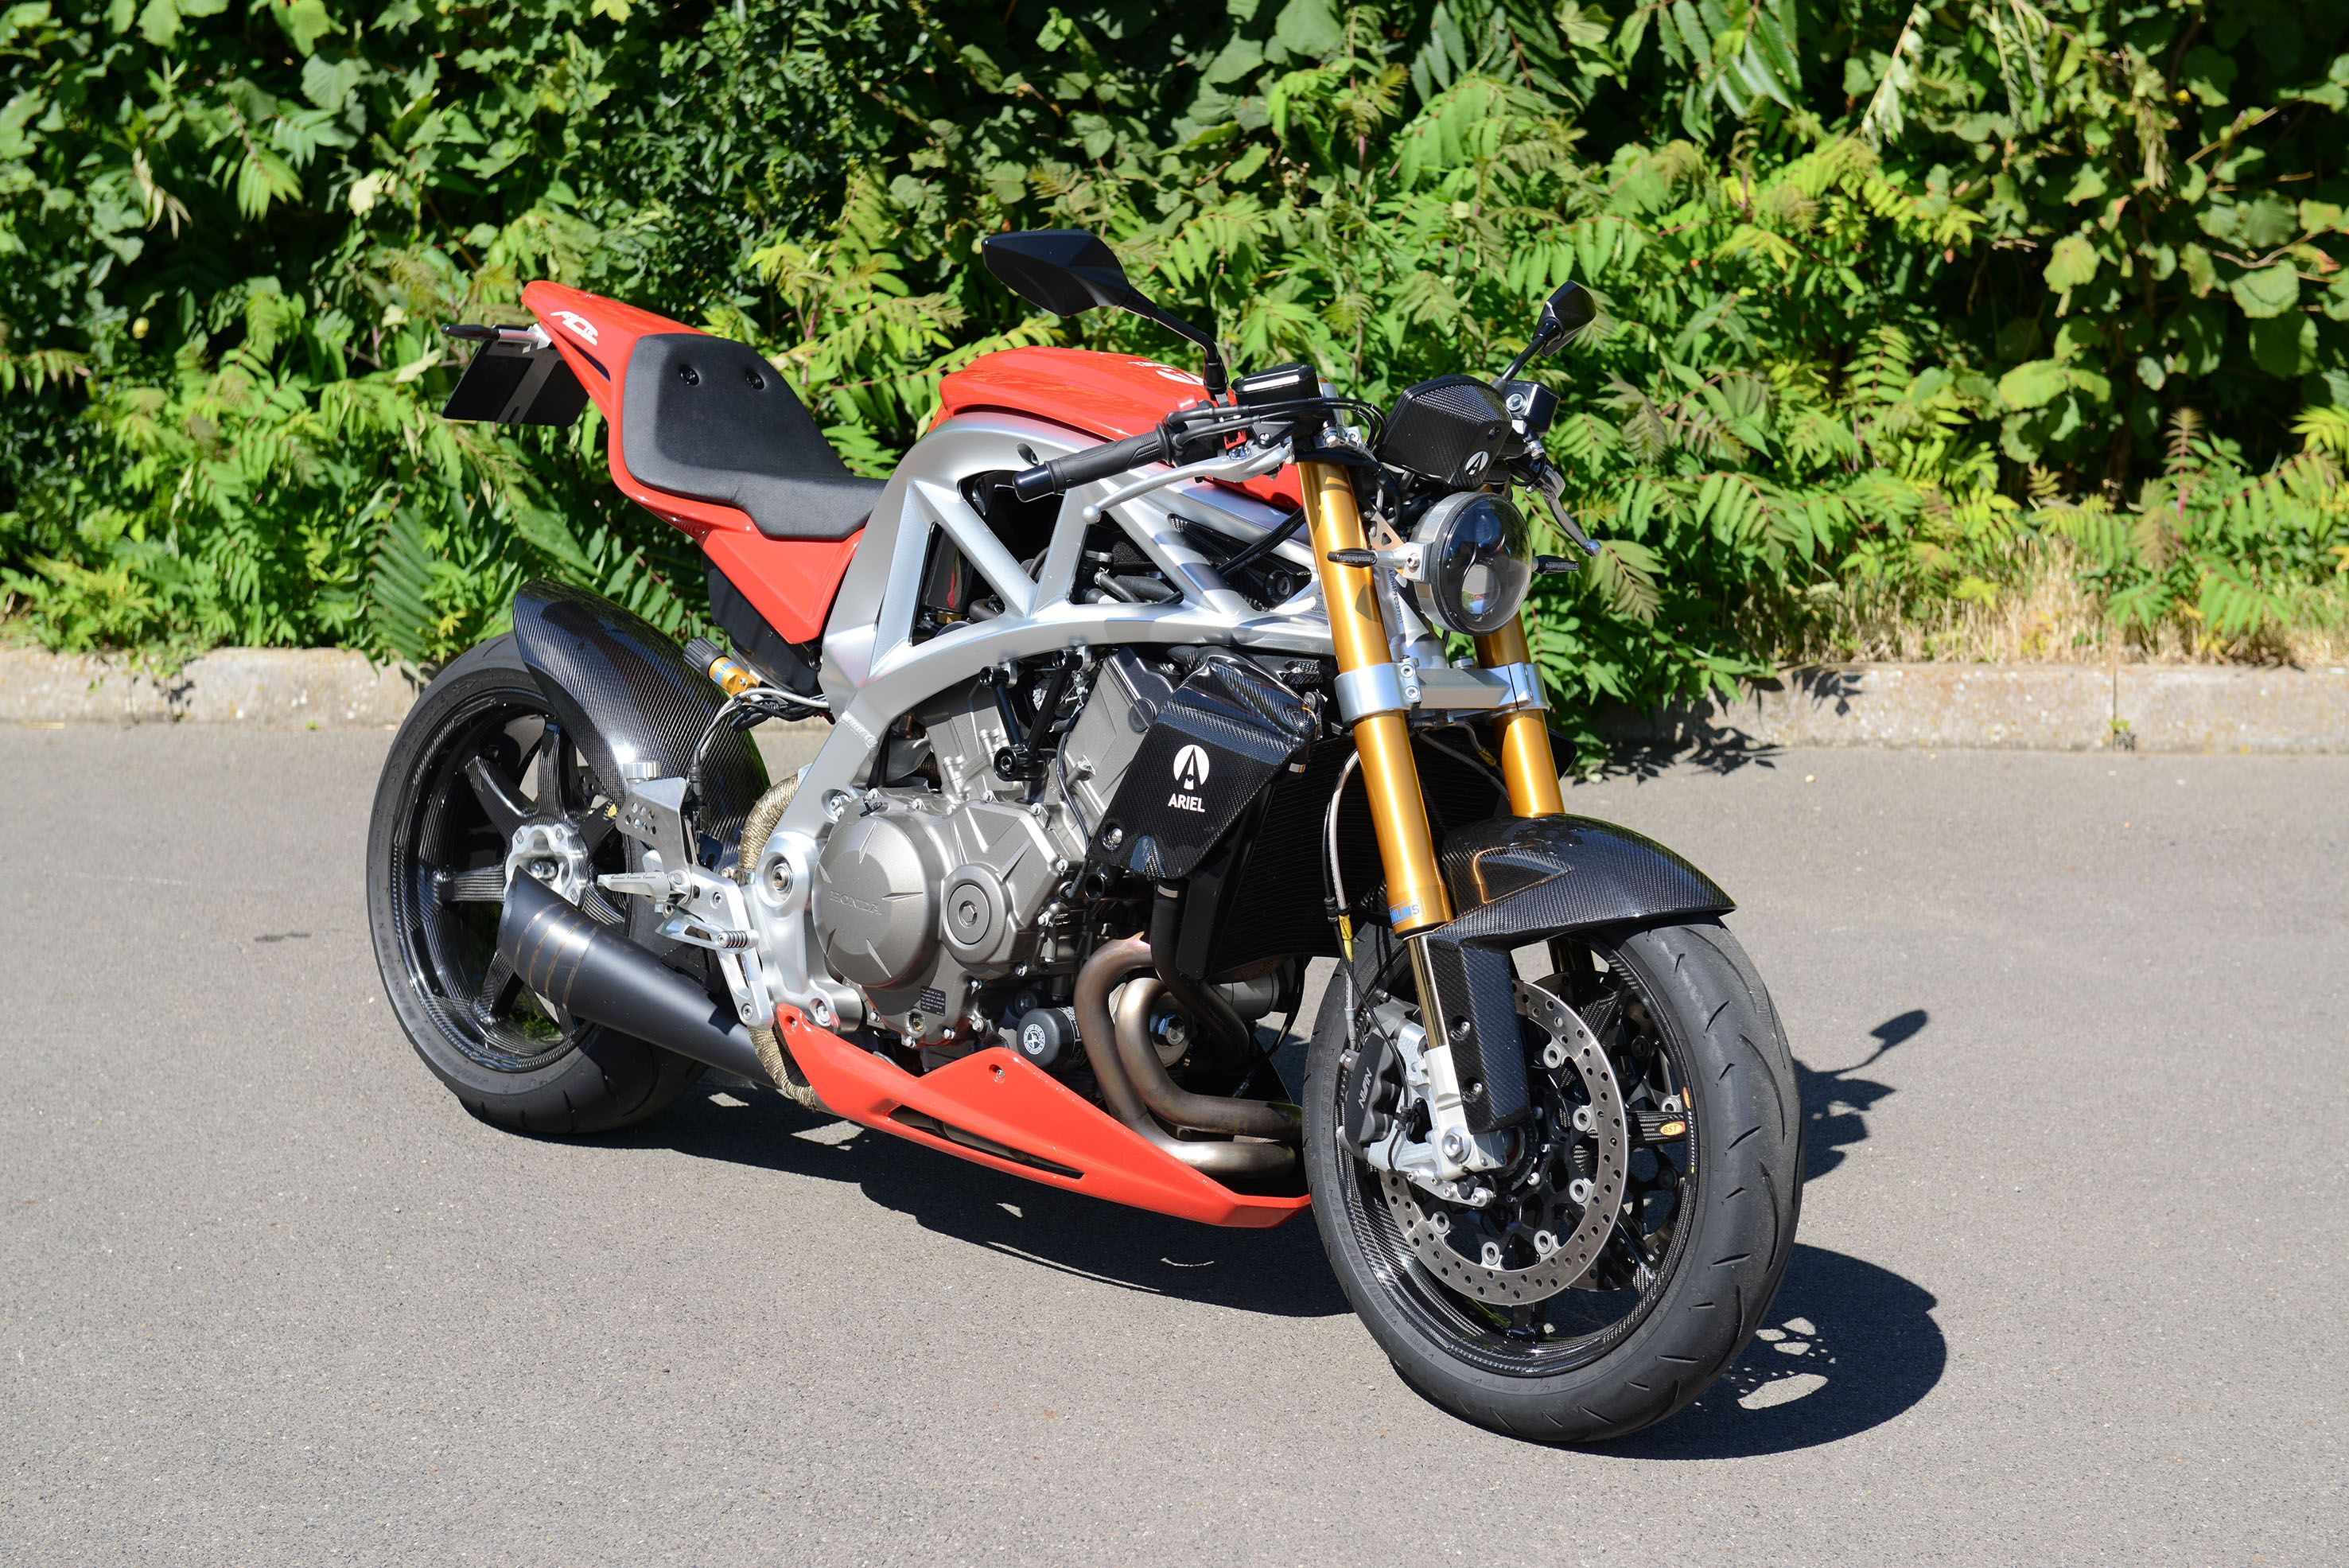 Ariel for Sale | Used Ariels | Cafe racer, Ariel, Motorcycle